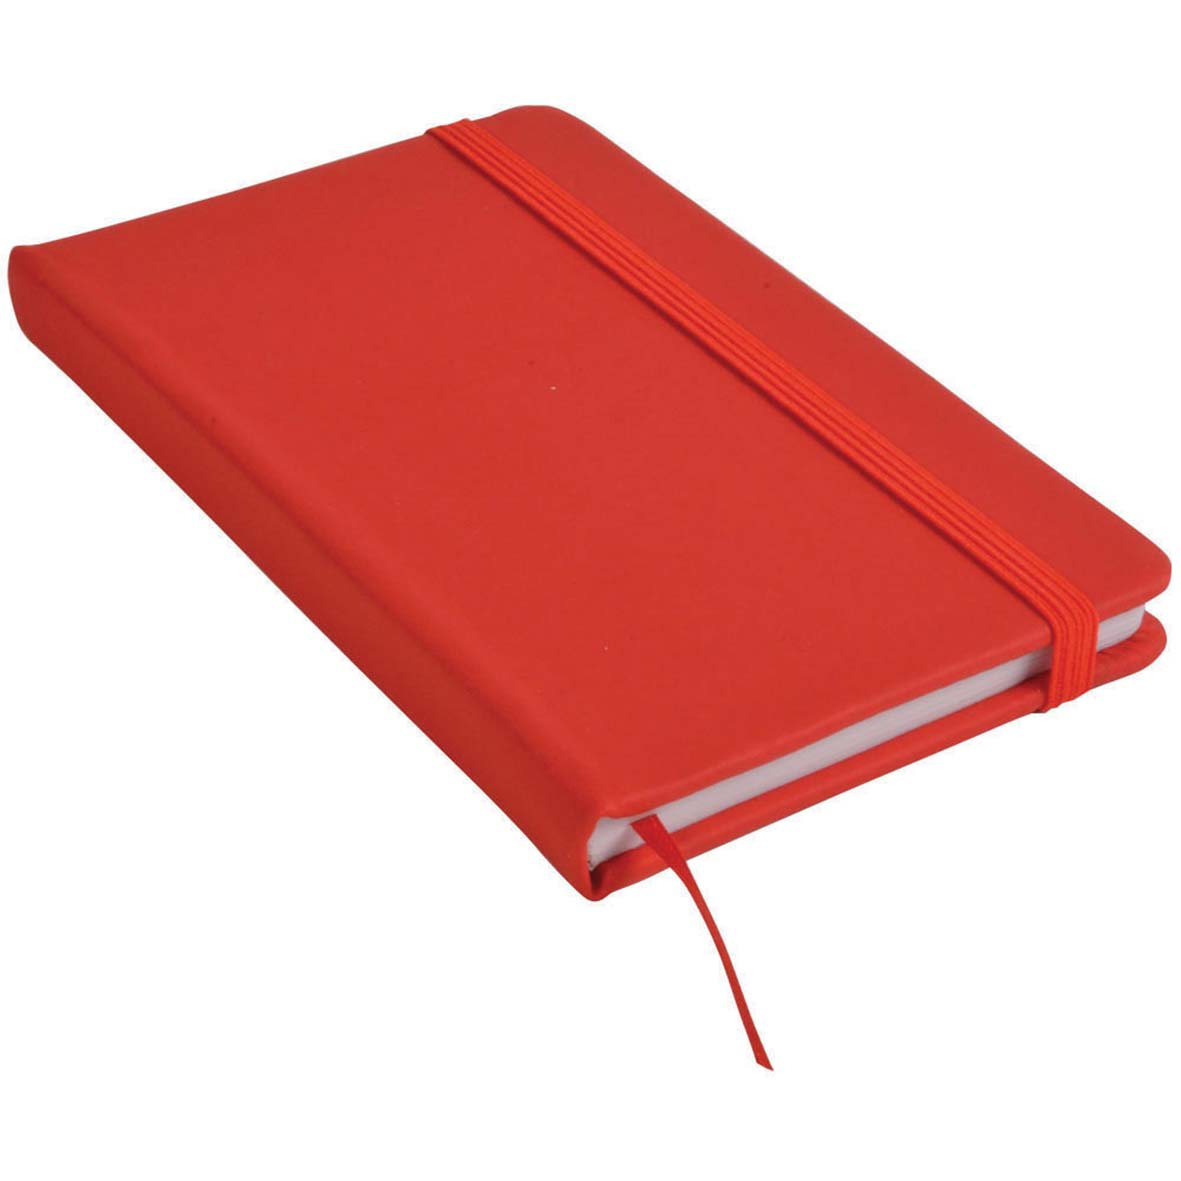 Note book with PU cover and elastic band for closing -  Red sip-1441403